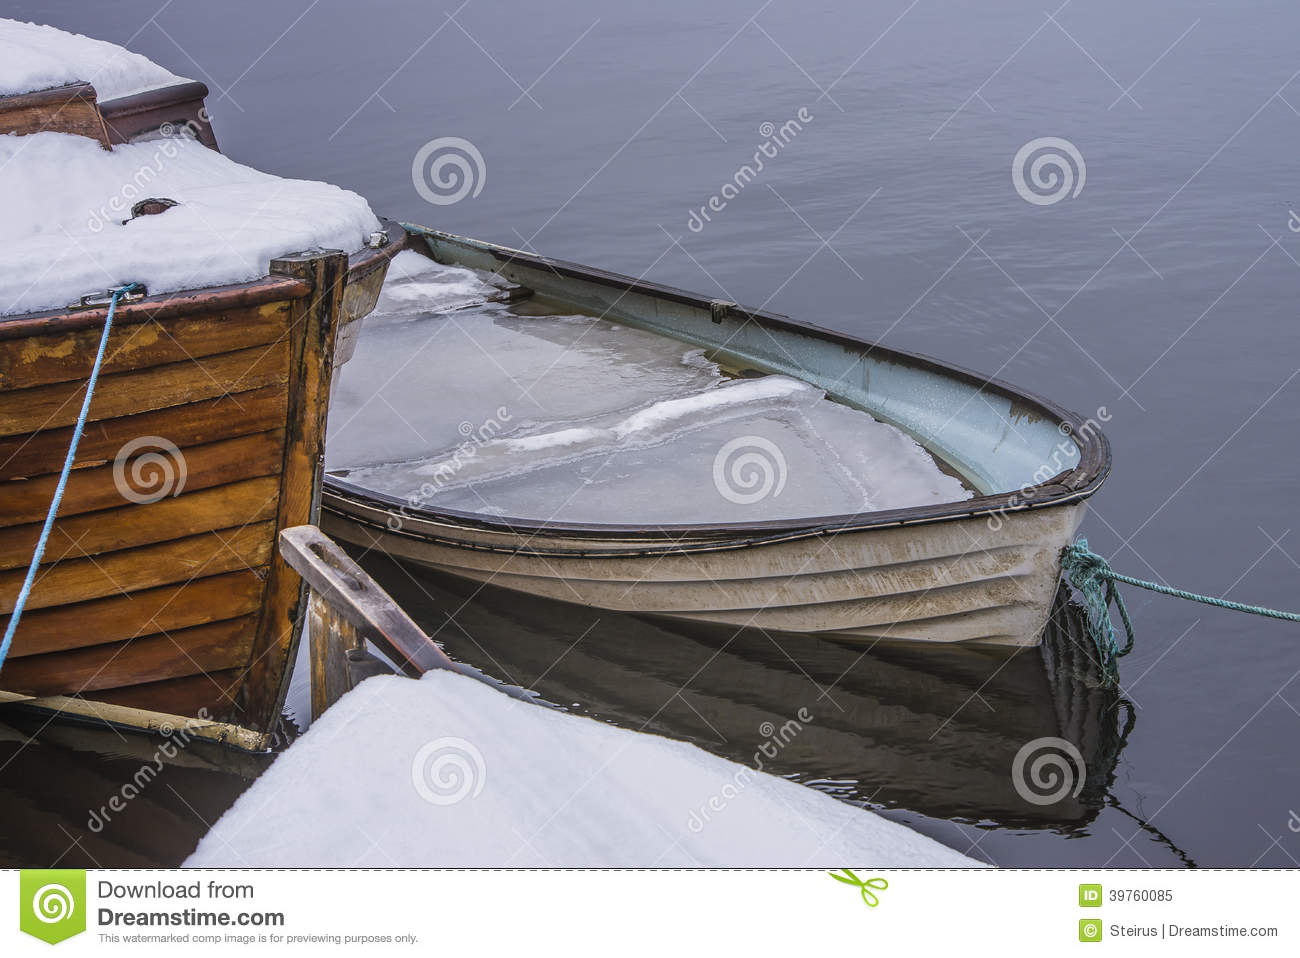 Rowing Boat Full Of Water And Ice Stock Illustration - Image: 39760085